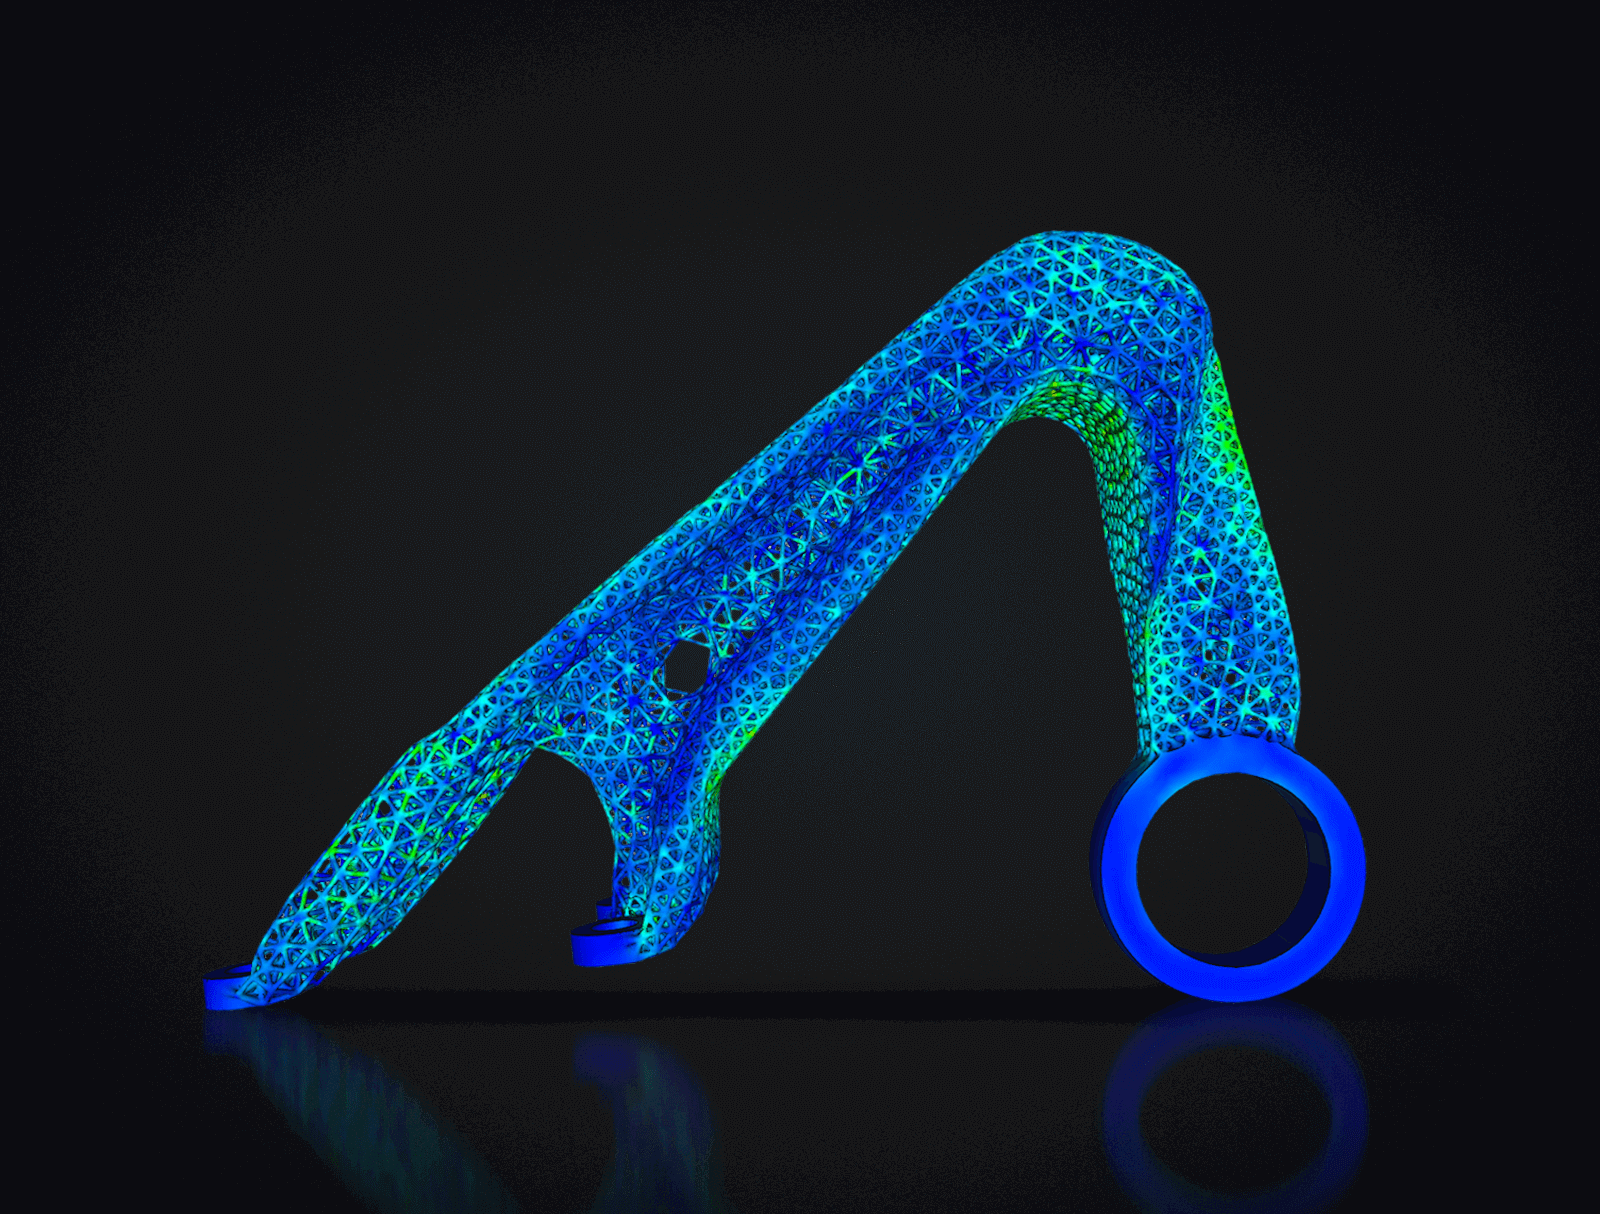 A part in development using TrueSOLID™ generative design. Image via Frustum